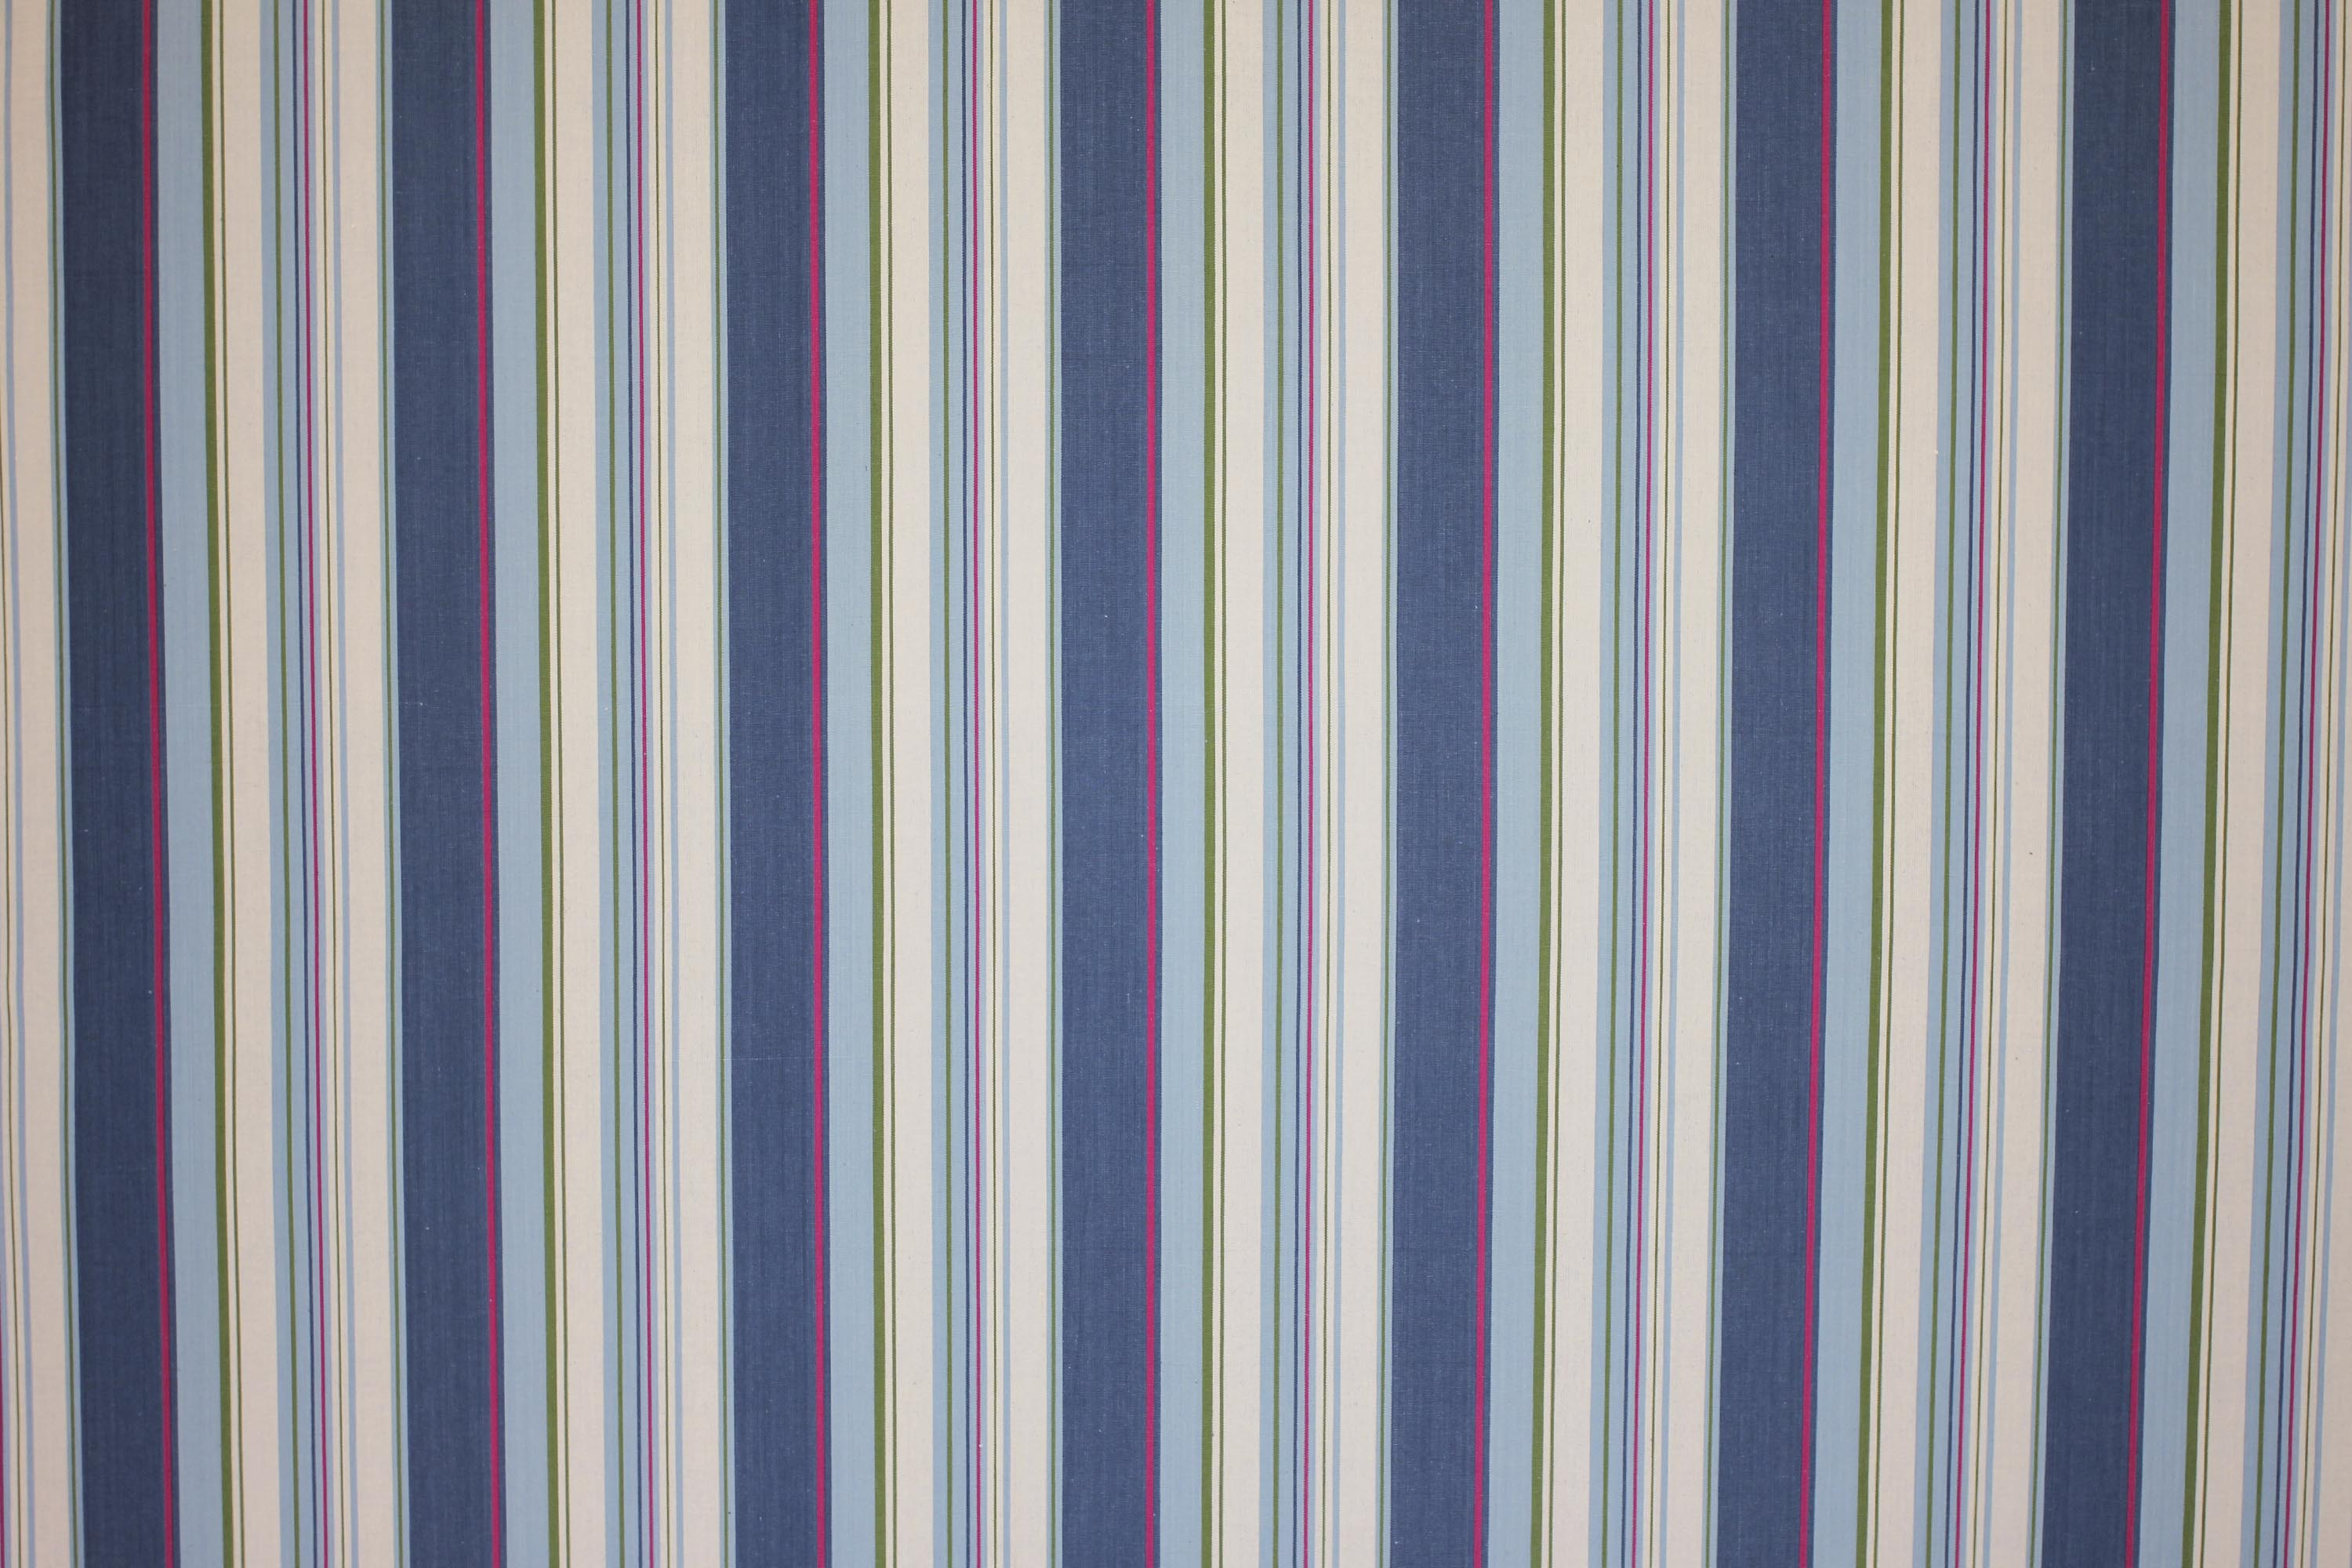 fabrics for chairs striped high quality dining room petrol blue stripe cotton curtain upholstery